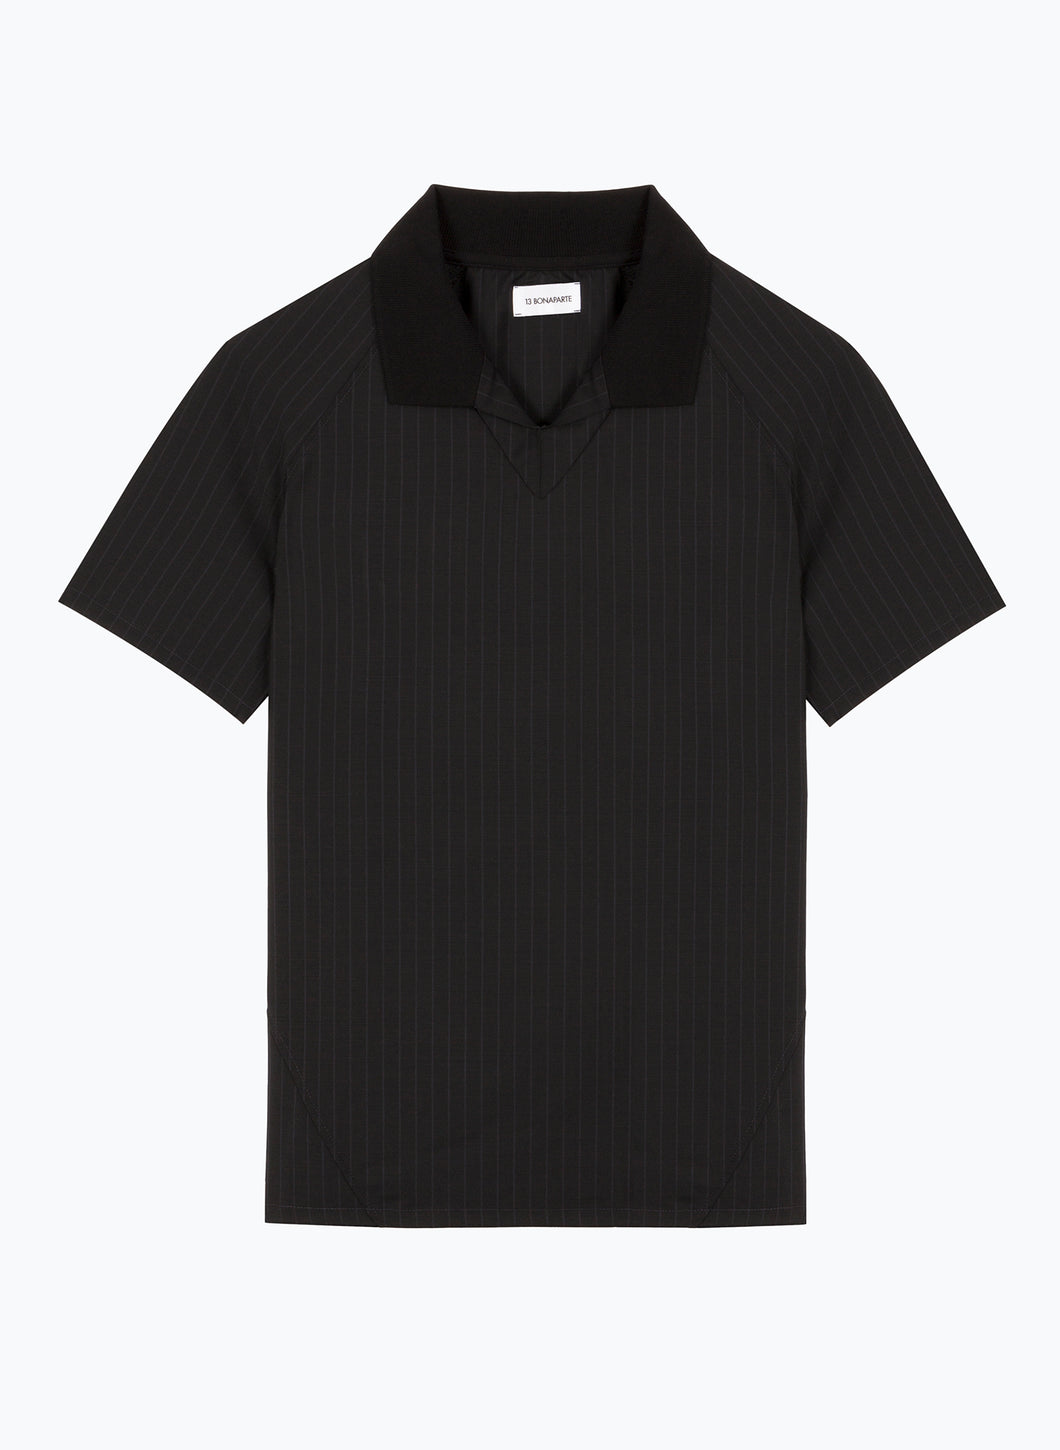 Poloshirt with Edge-Ribbed Collar in Black Striped Cool Wool